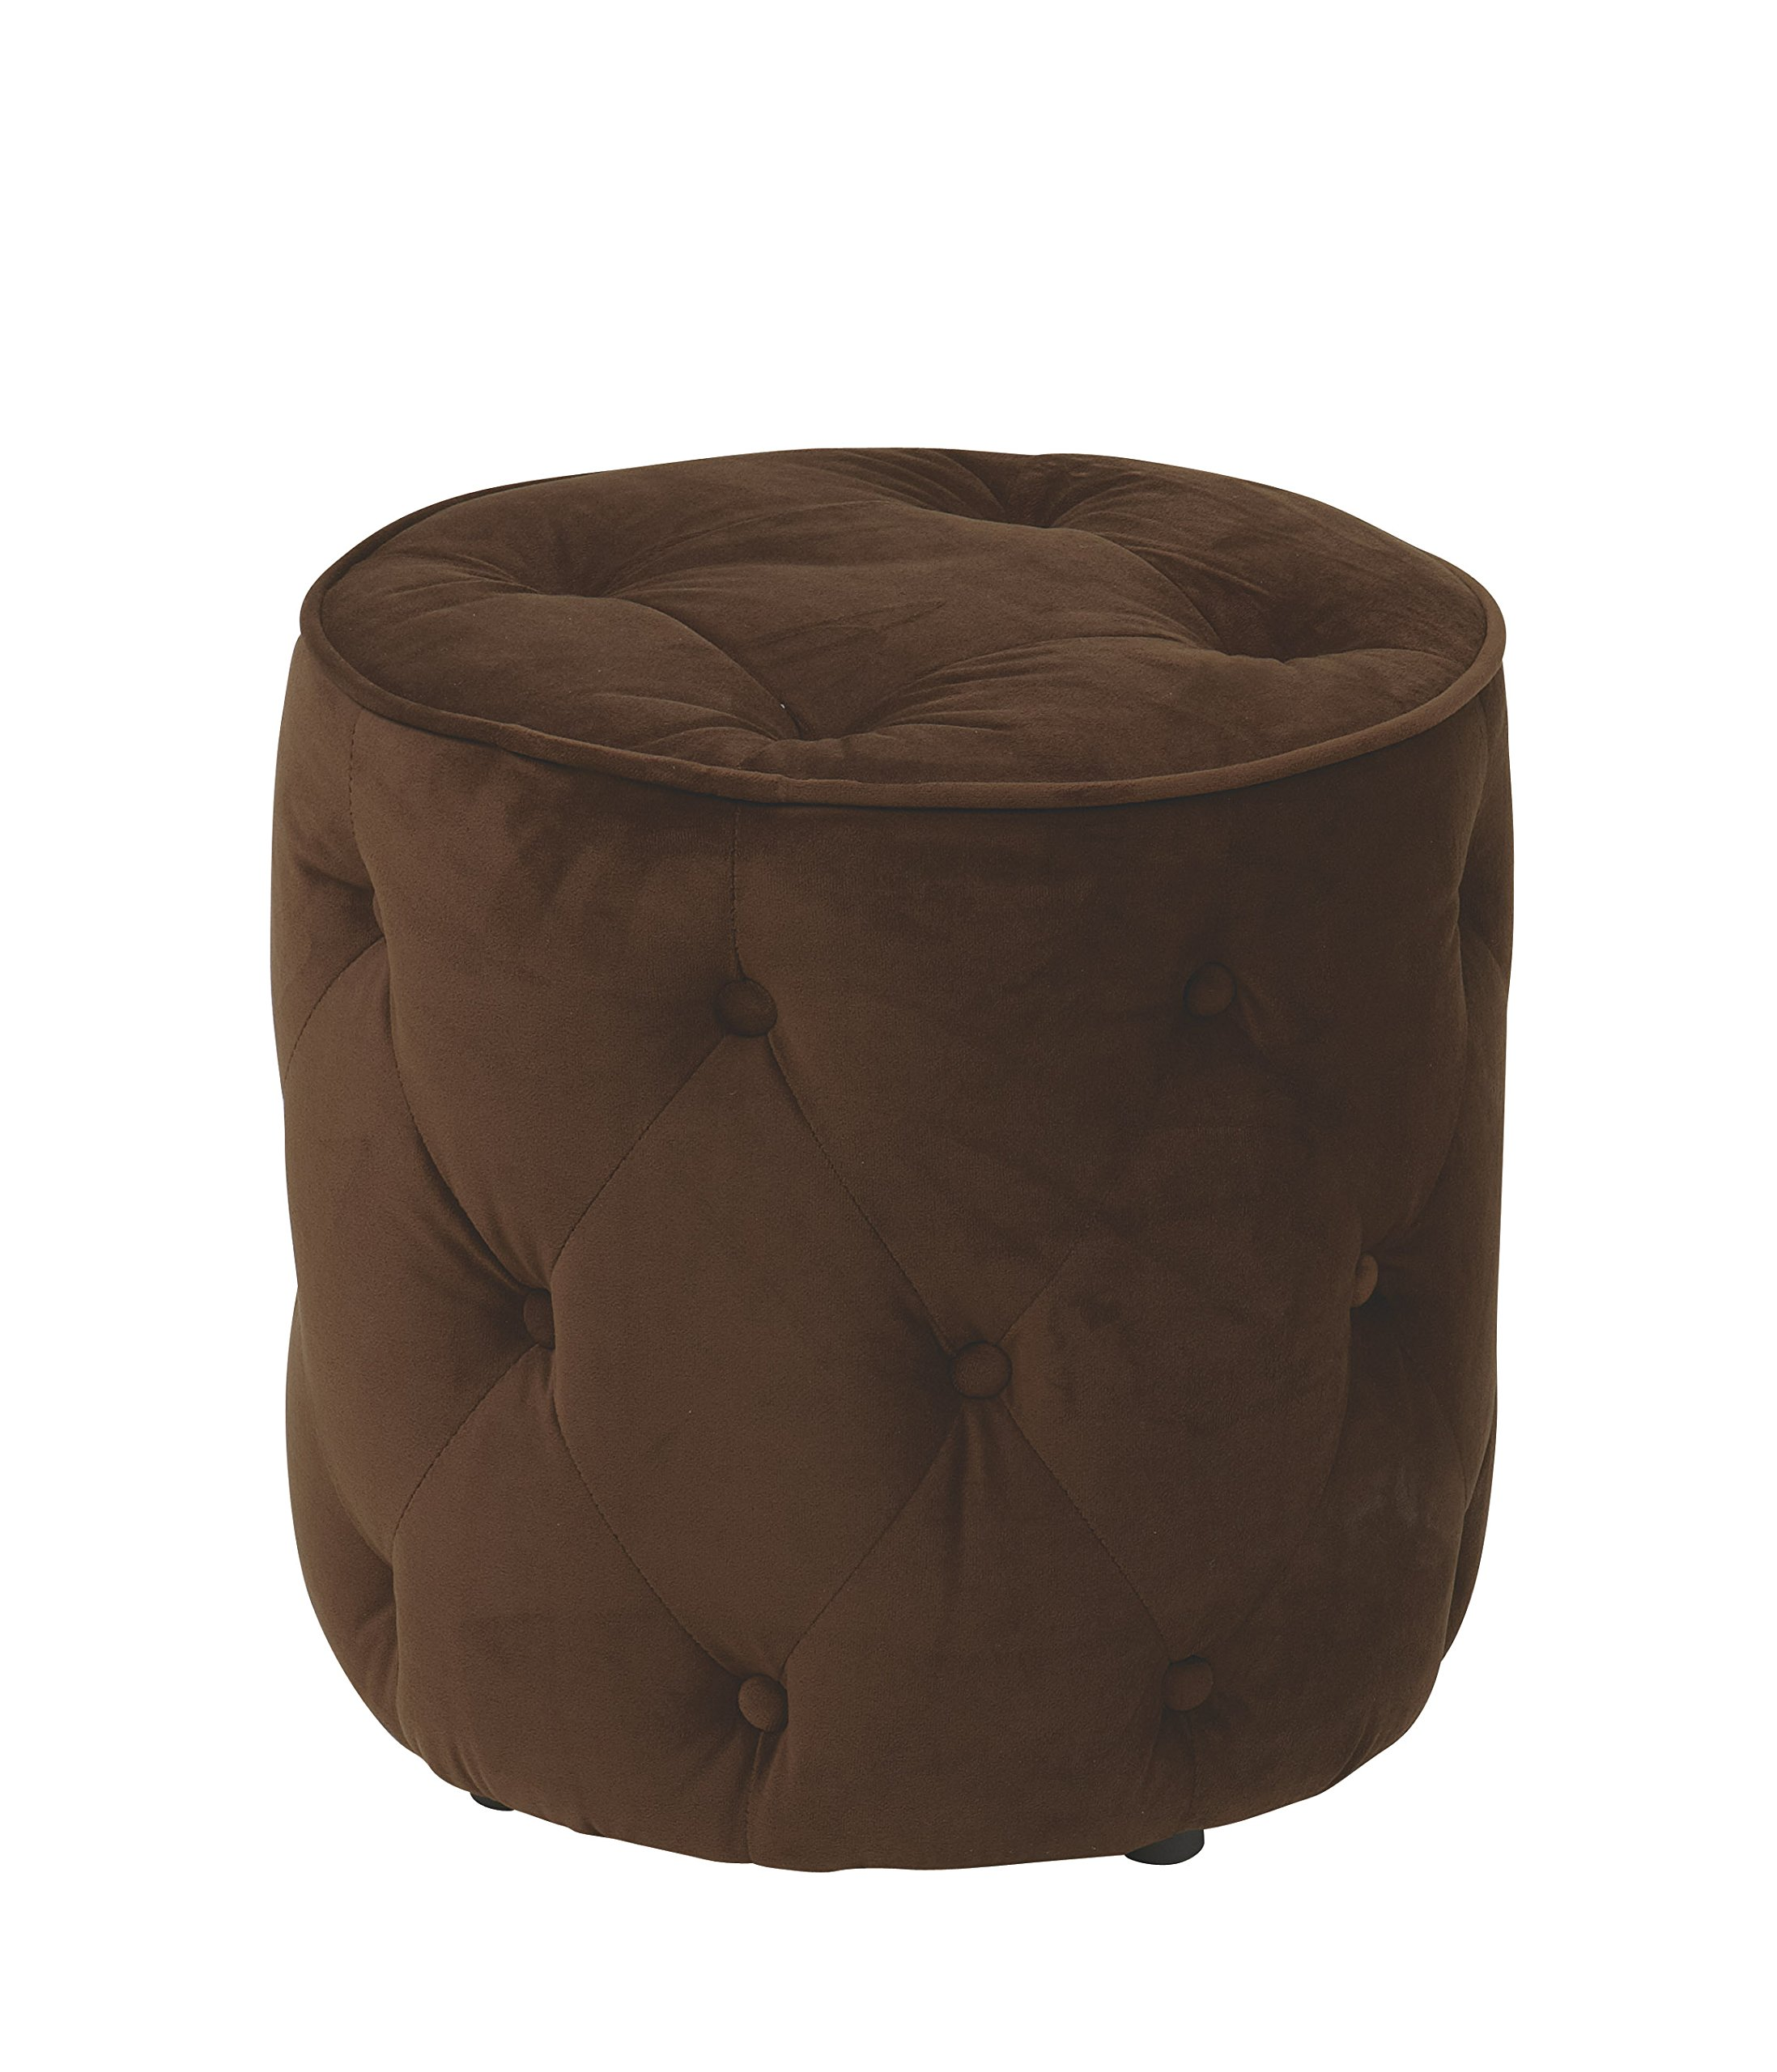 Avenue Six AVE SIX Curves Tufted Round Ottoman with Espresso Finish Solid Wood Legs, Chocolate Velvet Fabric